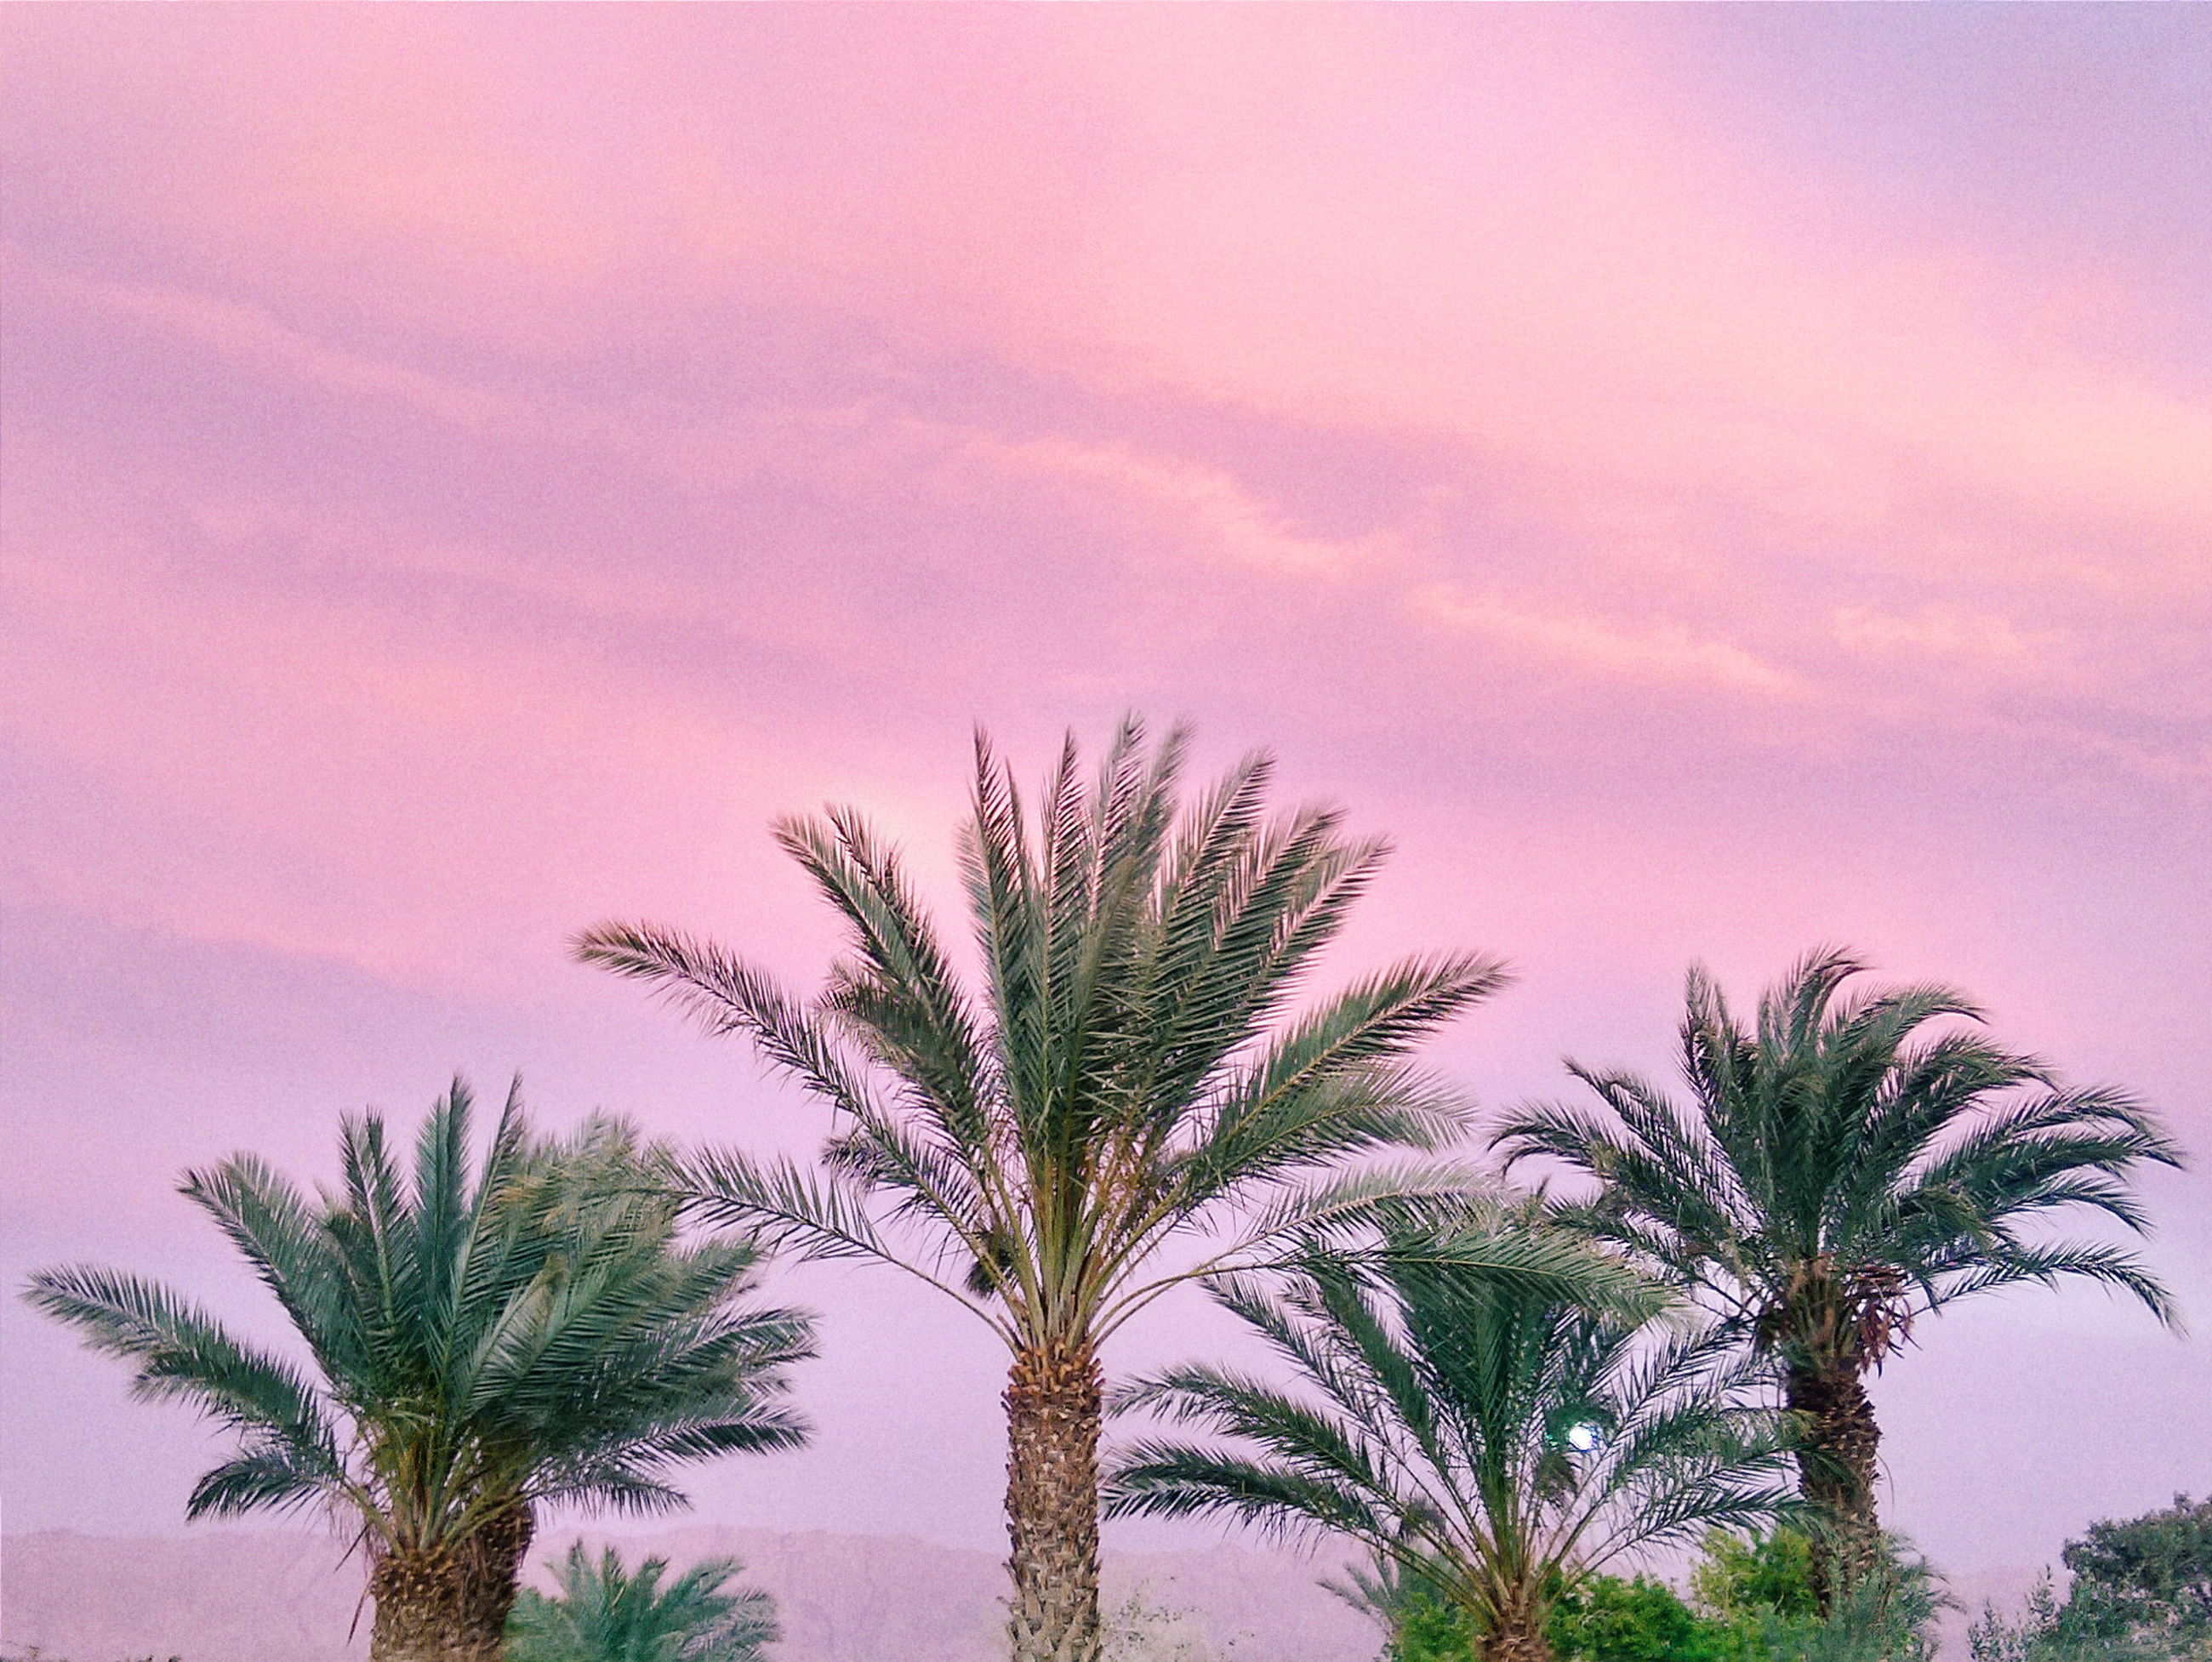 palm tree, tree, sky, low angle view, tranquility, growth, beauty in nature, sunset, nature, scenics, cloud - sky, tranquil scene, silhouette, cloud, outdoors, idyllic, dusk, no people, cloudy, tree trunk